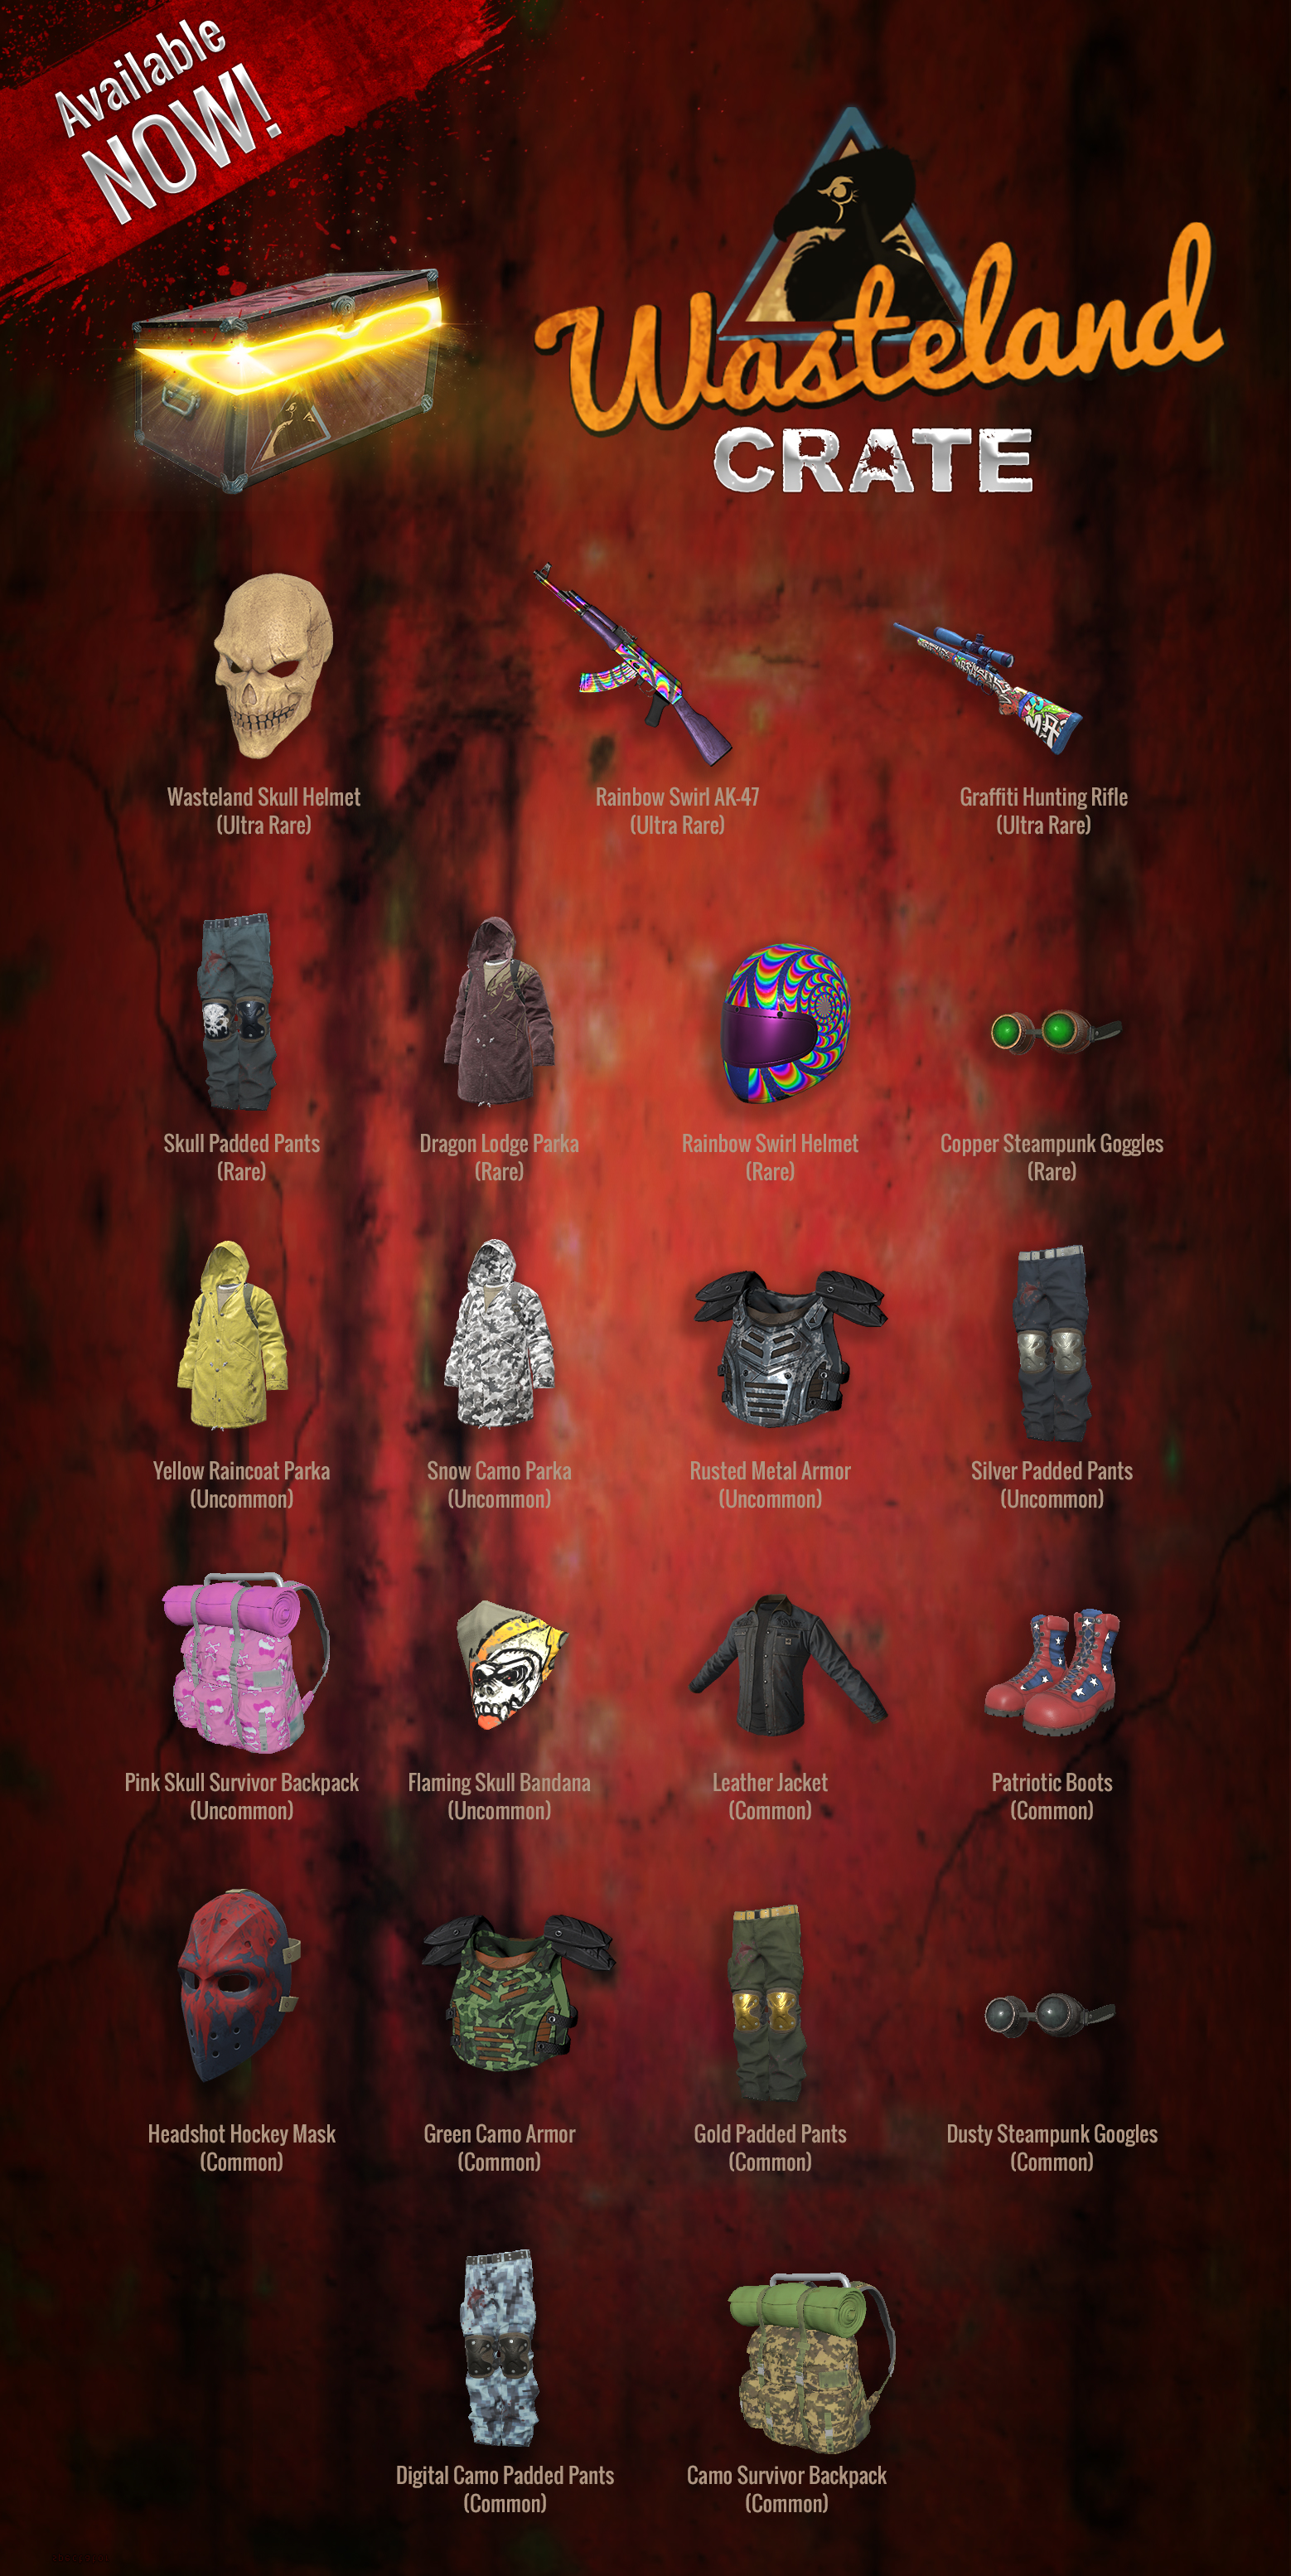 H1Z1 Wasteland Crate